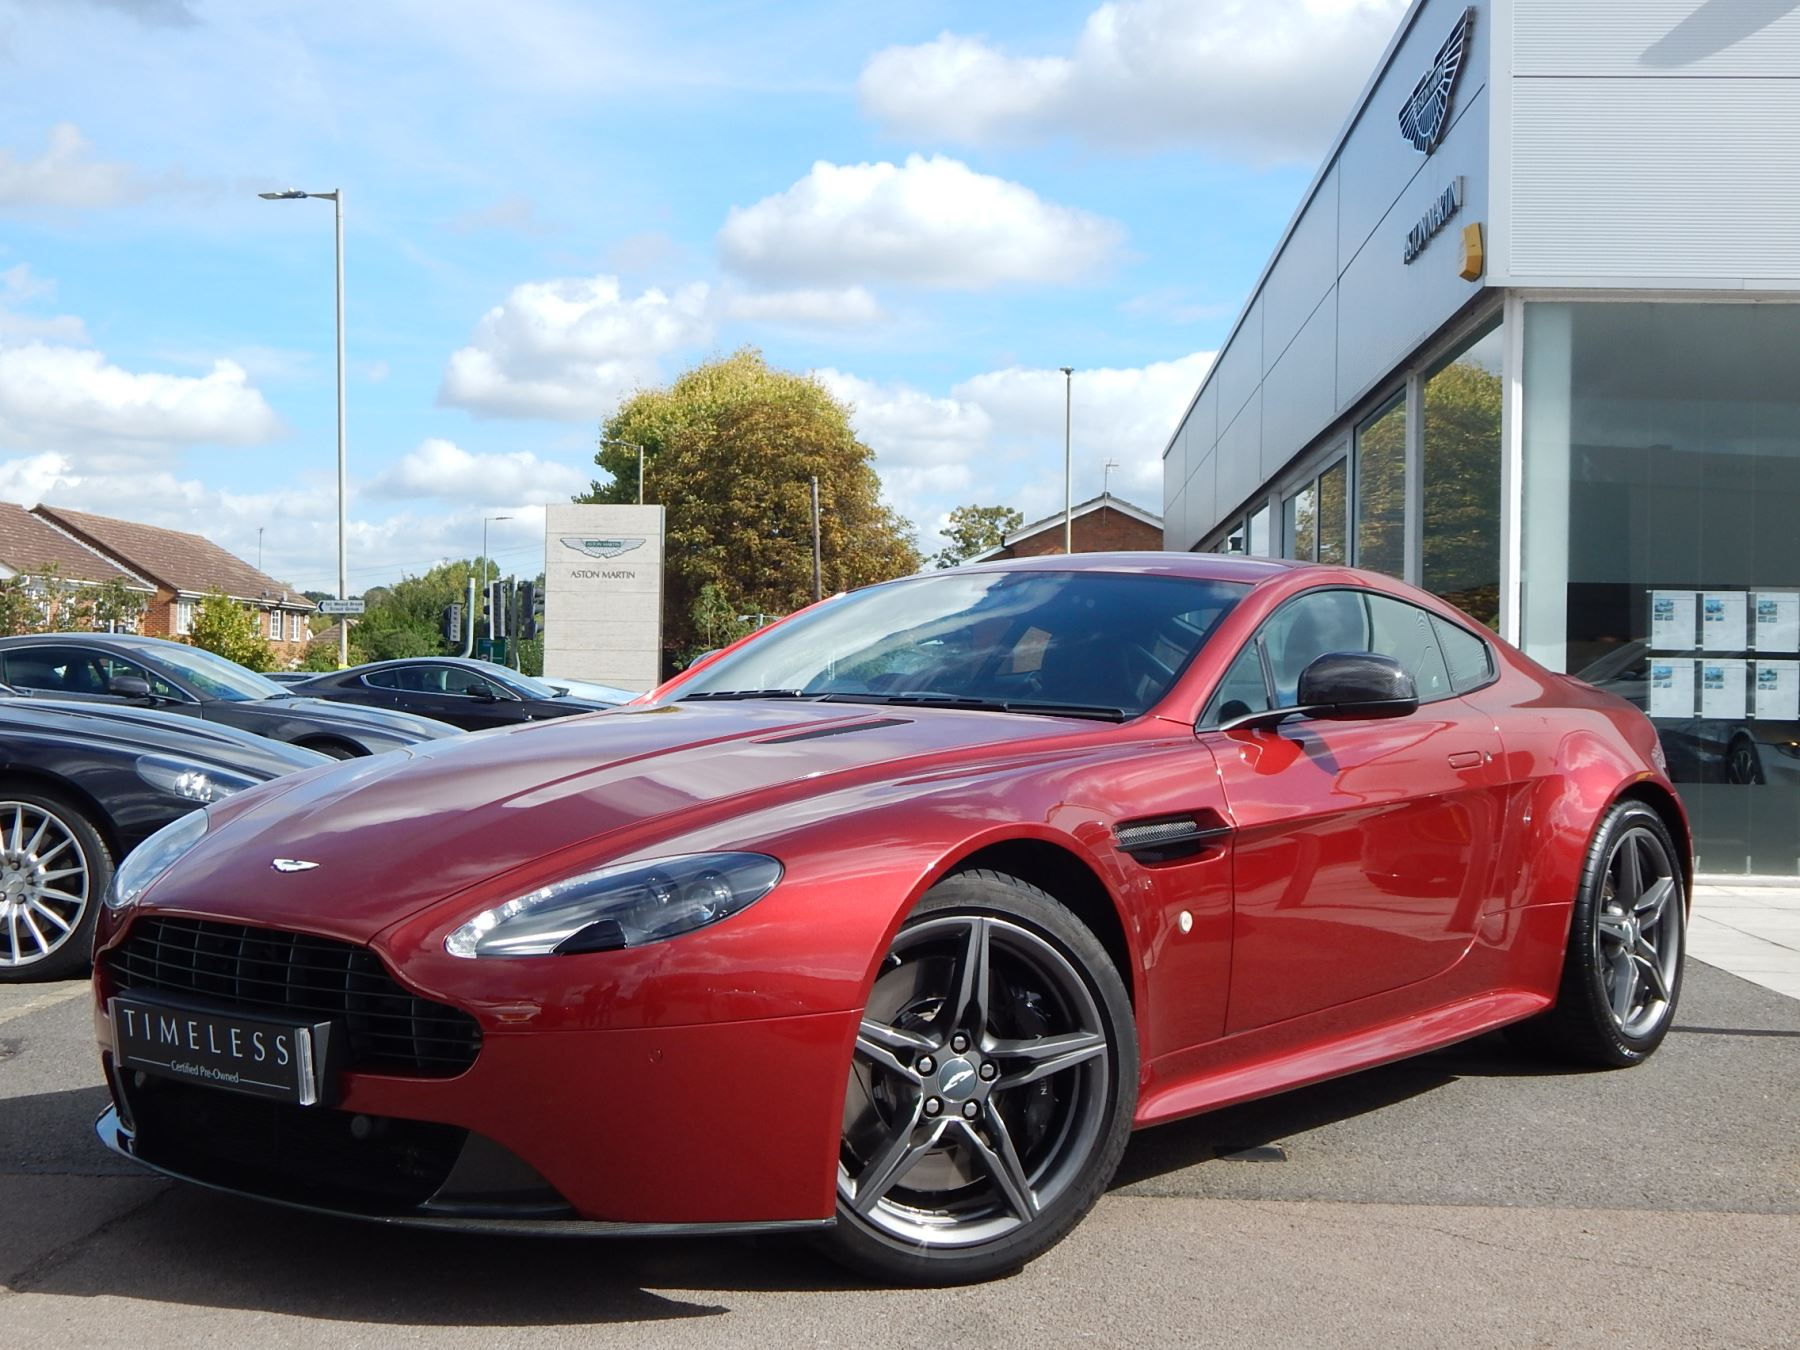 Aston Martin V8 Vantage S Coupe S 2dr Sportshift 4.7 Automatic 3 door Coupe (2017) image